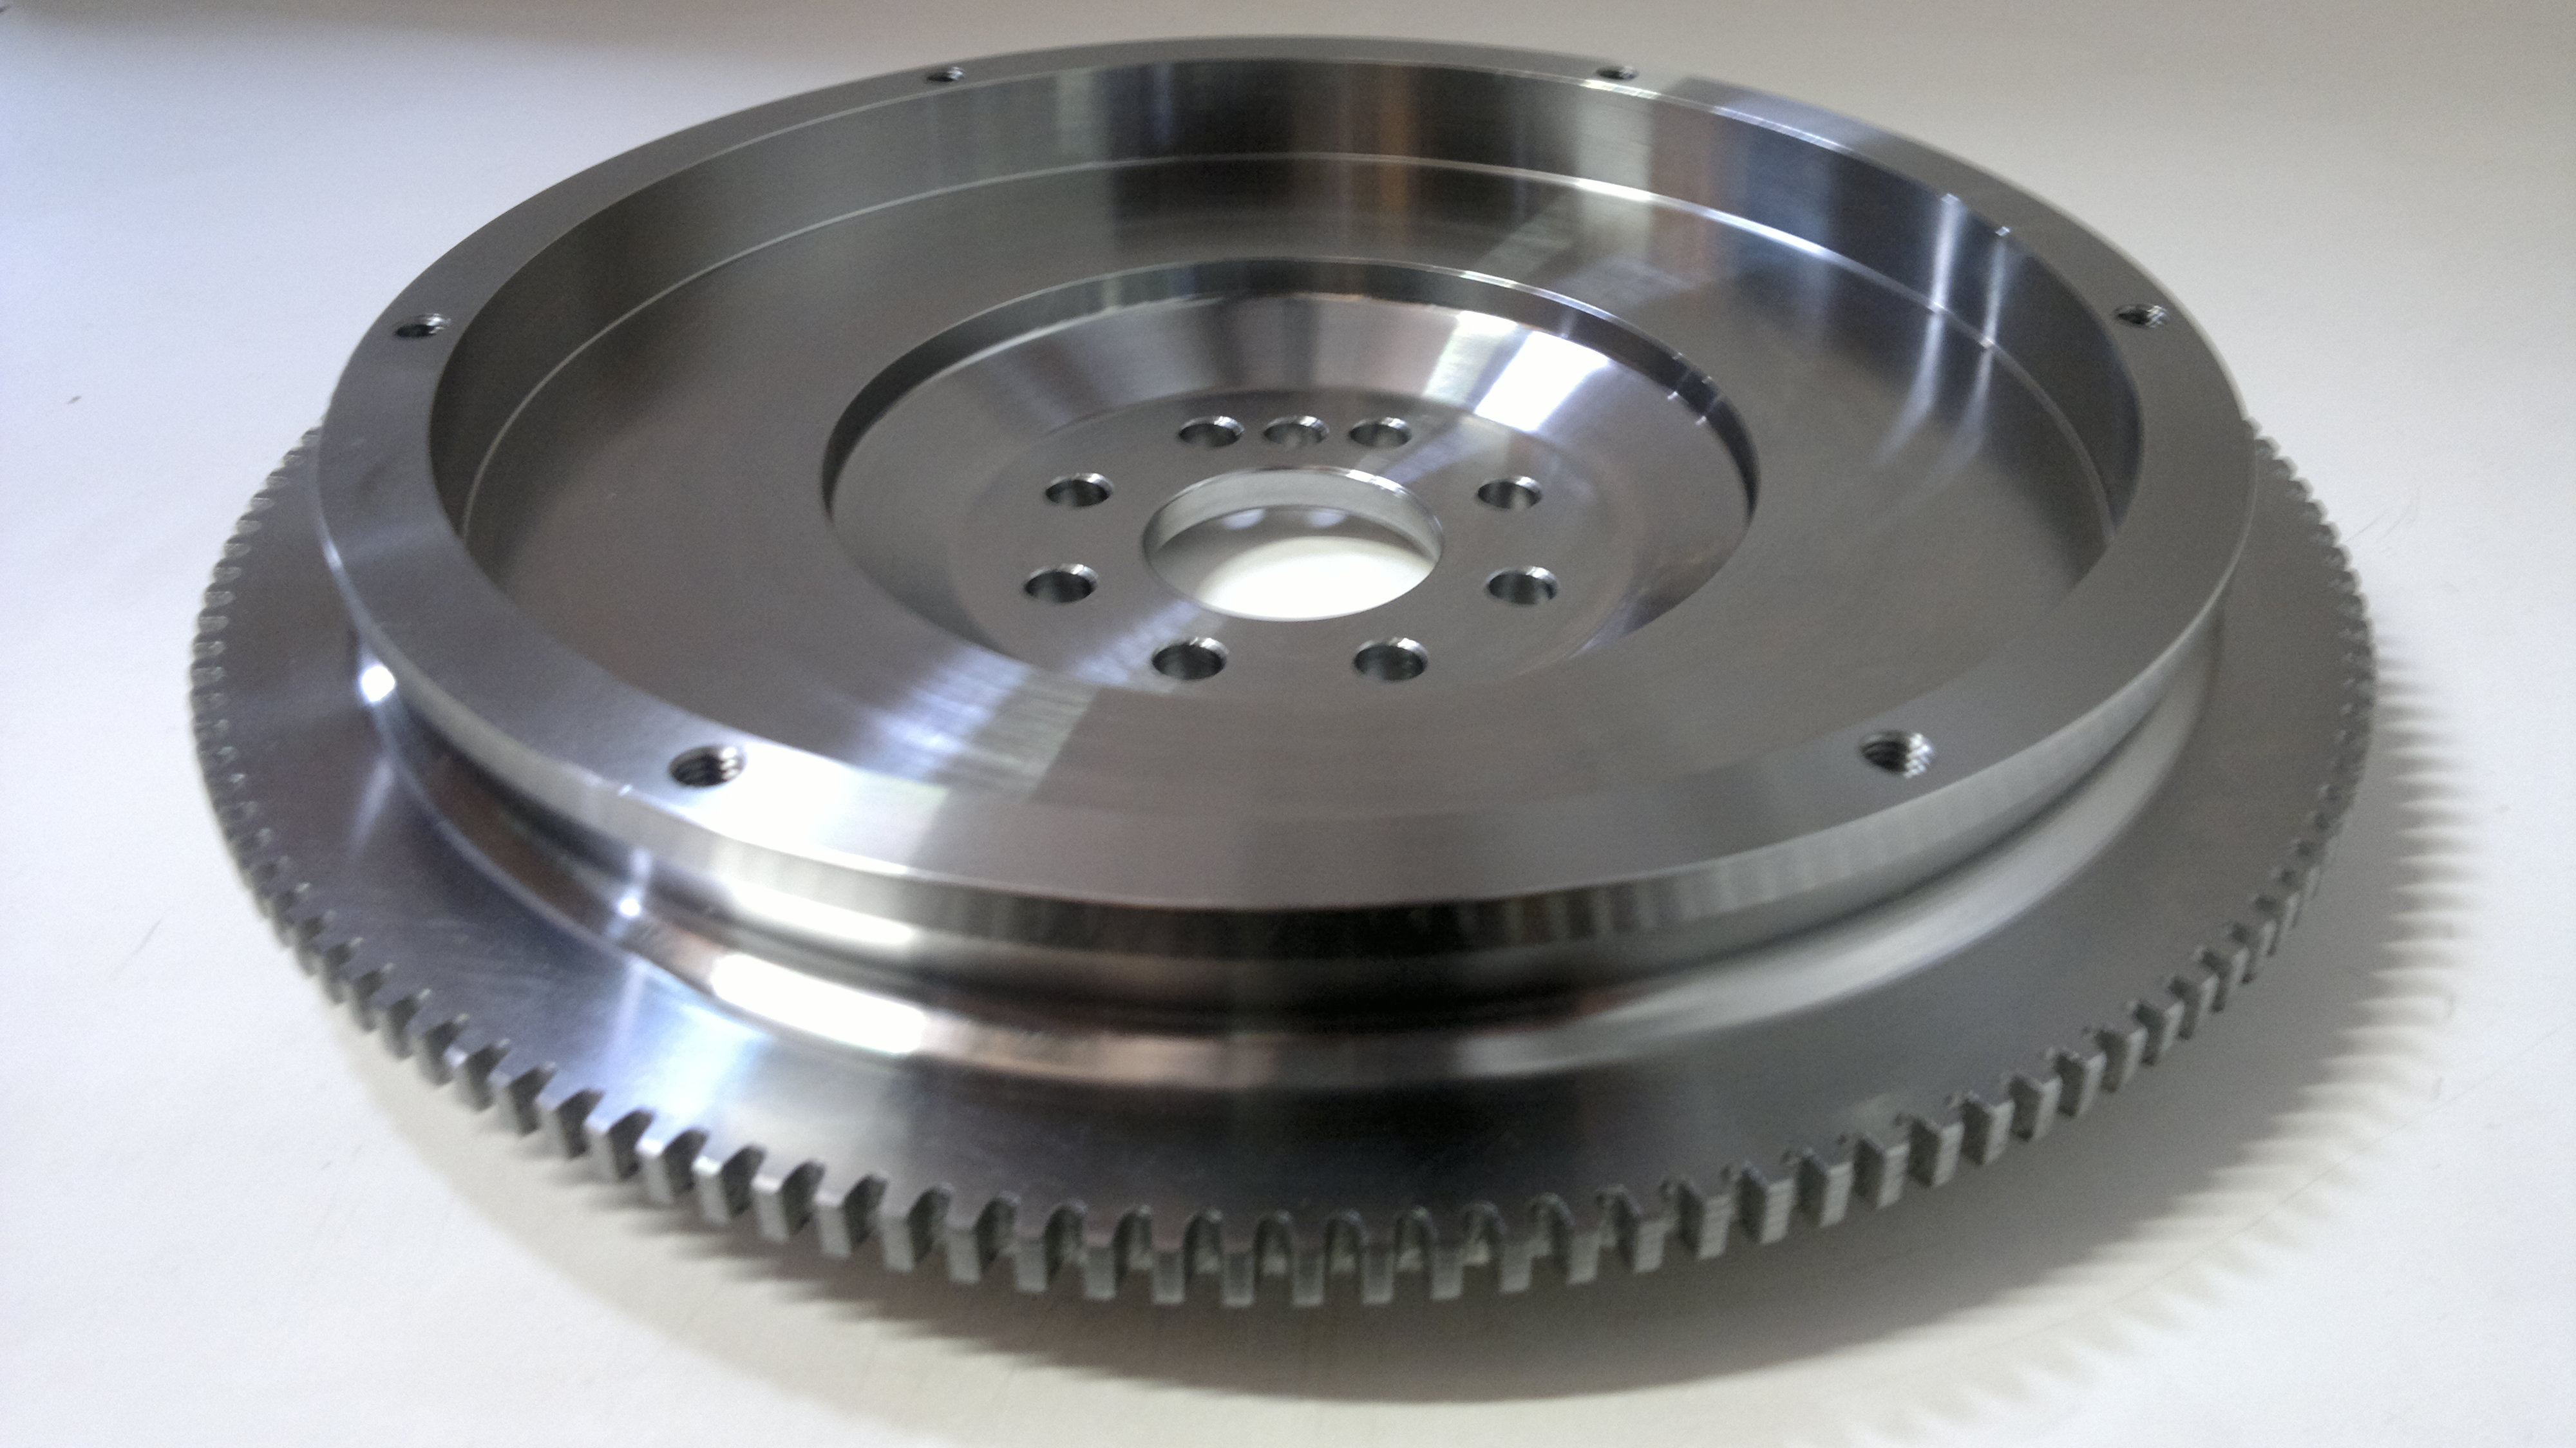 Rennsport Factory Mercedes bespoke lightened flywheel and fast road/light  competition going clutch system (400-1200NM)